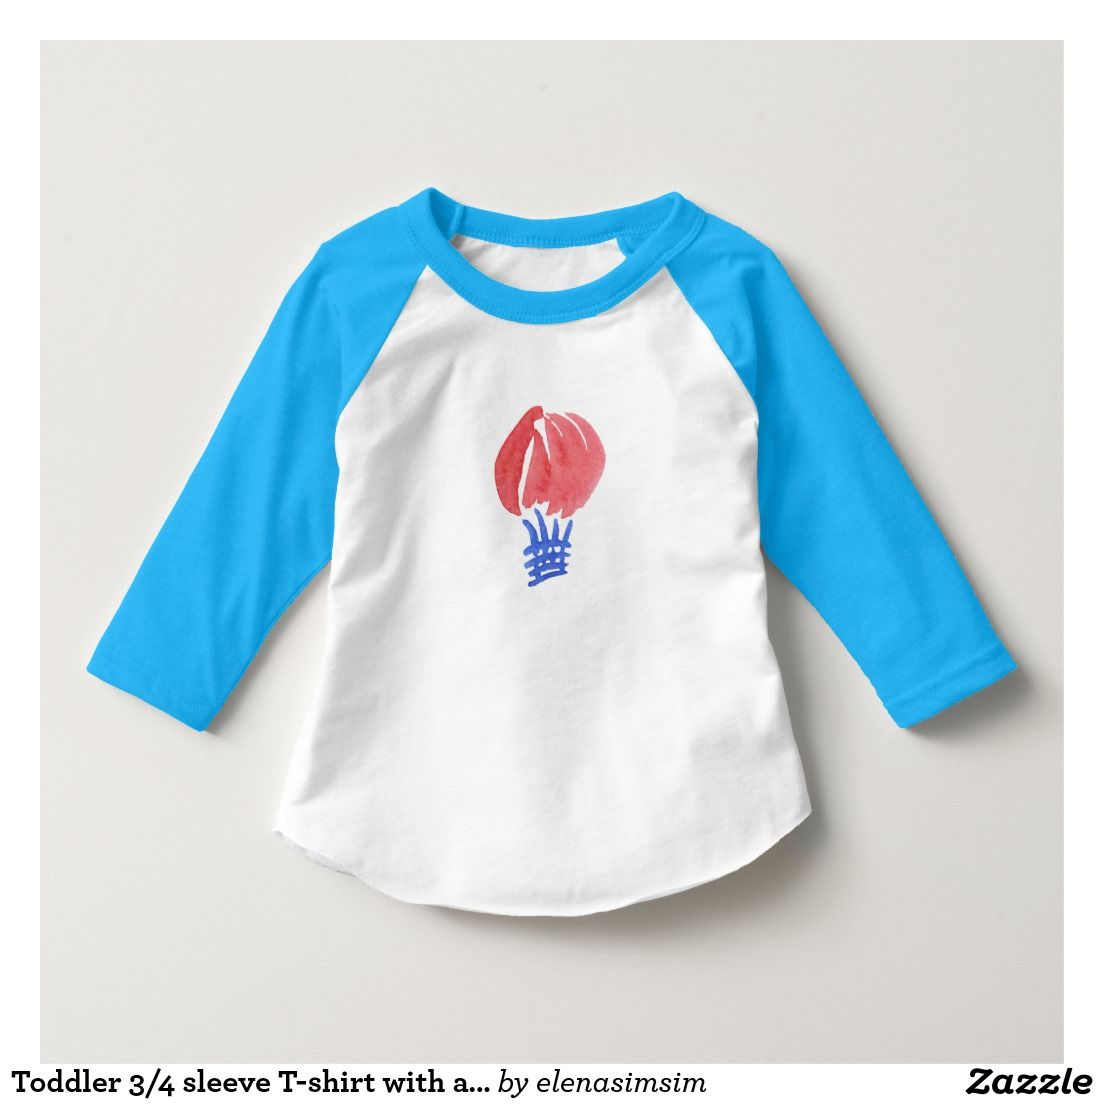 Toddler 3/4 sleeve T-shirt with air balloon